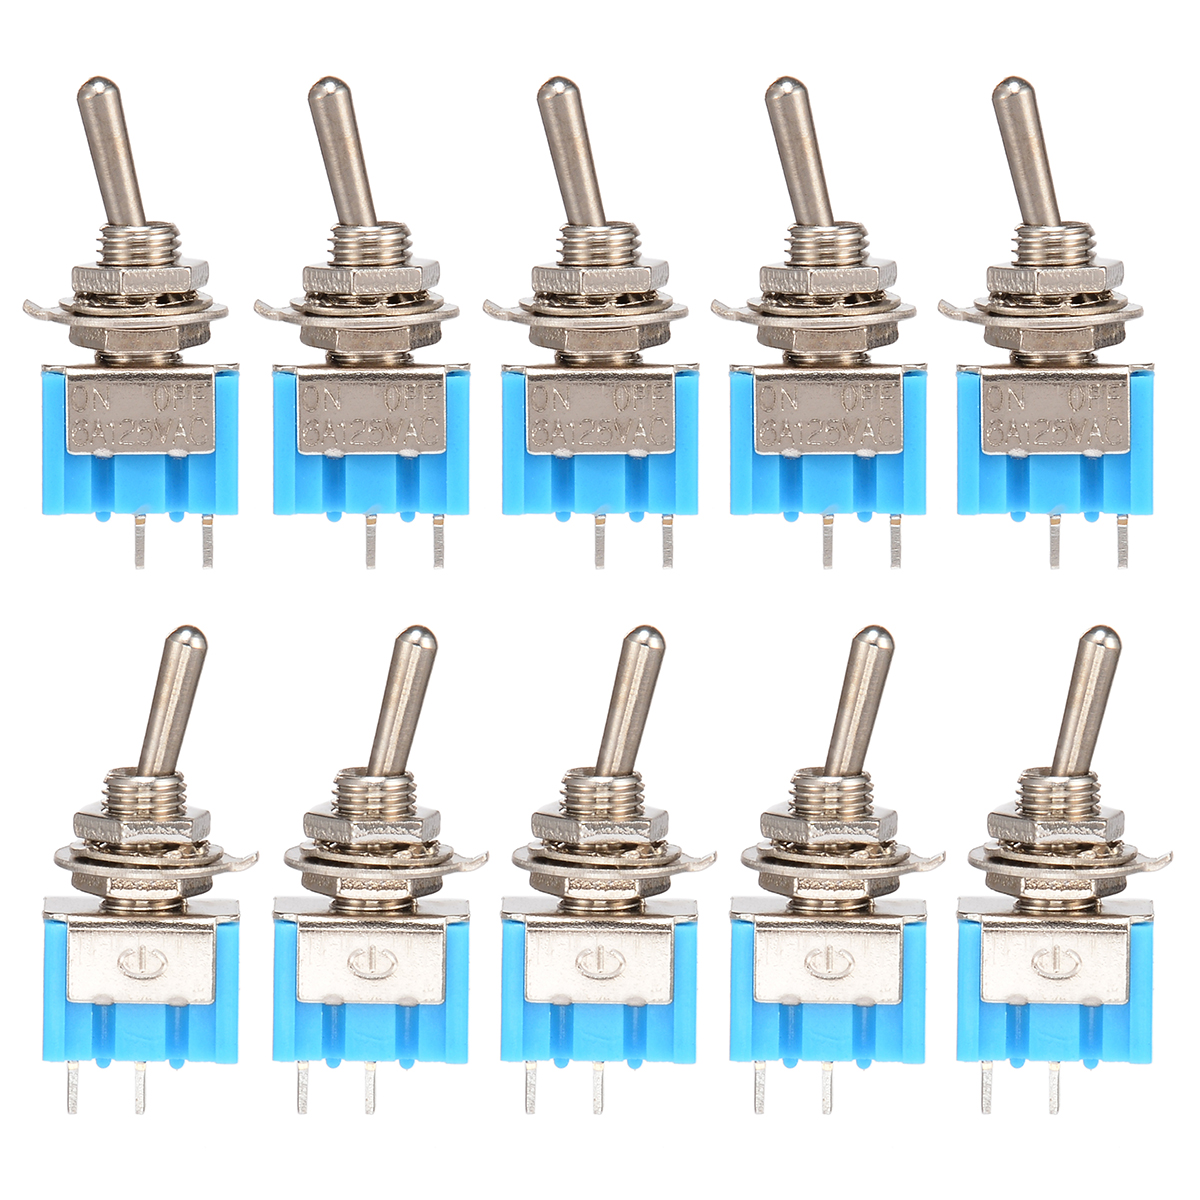 10pcs MTS-101 2 Pin SPST Switch ON-OFF 2 Position 6A 250V AC Mini Electrical Toggle Switches 6MM Mounting Hole Mayitr 10pcs dark blue 3 position spst latching switches mini on off on toggle switch 6a 125vac 3a 250vac for switching lights motors